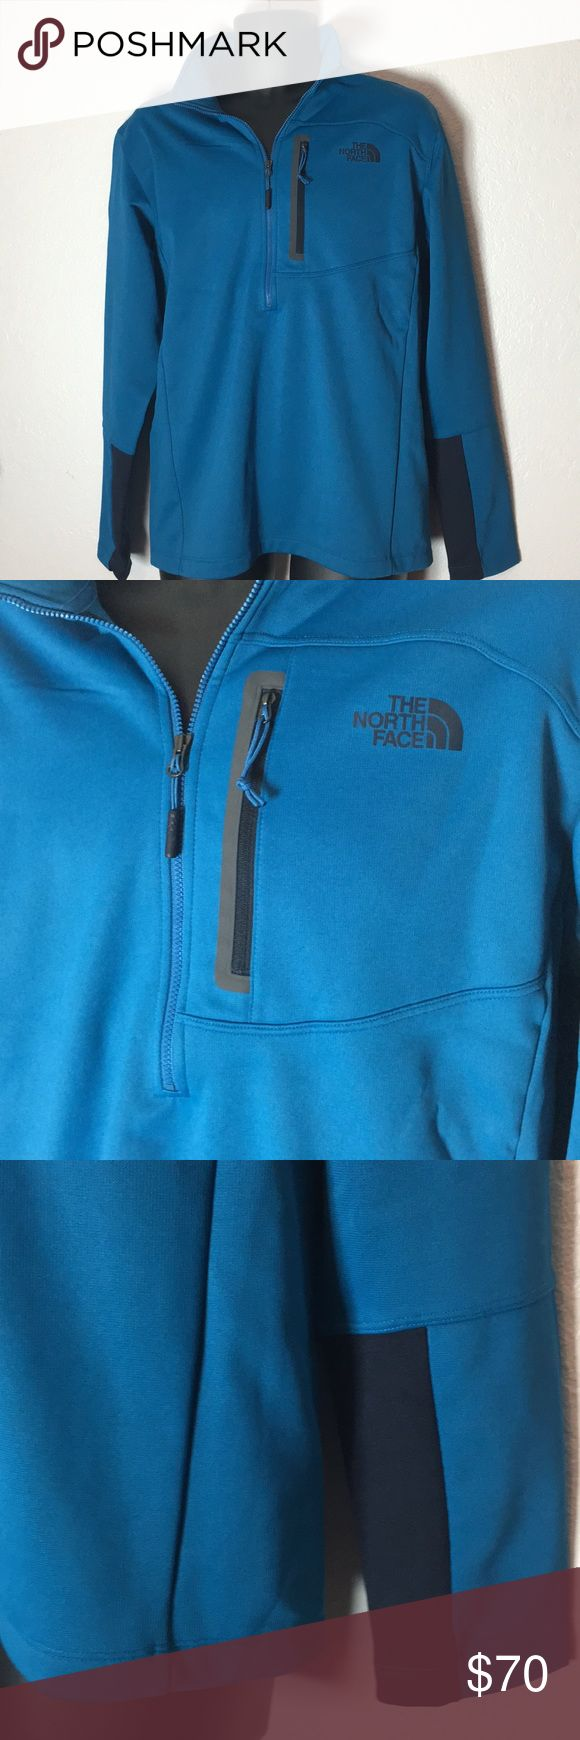 🆕NWT Men's North Face Pullover This pullover is a medium blue color. It's a 1/4 Zip and has a zippered front pocket. It is fleece lined so very warm. NWT, size L. Save on ✈️SHIPPING✈️and 🎁BUNDLE! I even give a discount on 3 or more regularly priced item bundles. I always accept reasonable offers with the offer button! 🚫❌Lowball offers please! The North Face Jackets & Coats